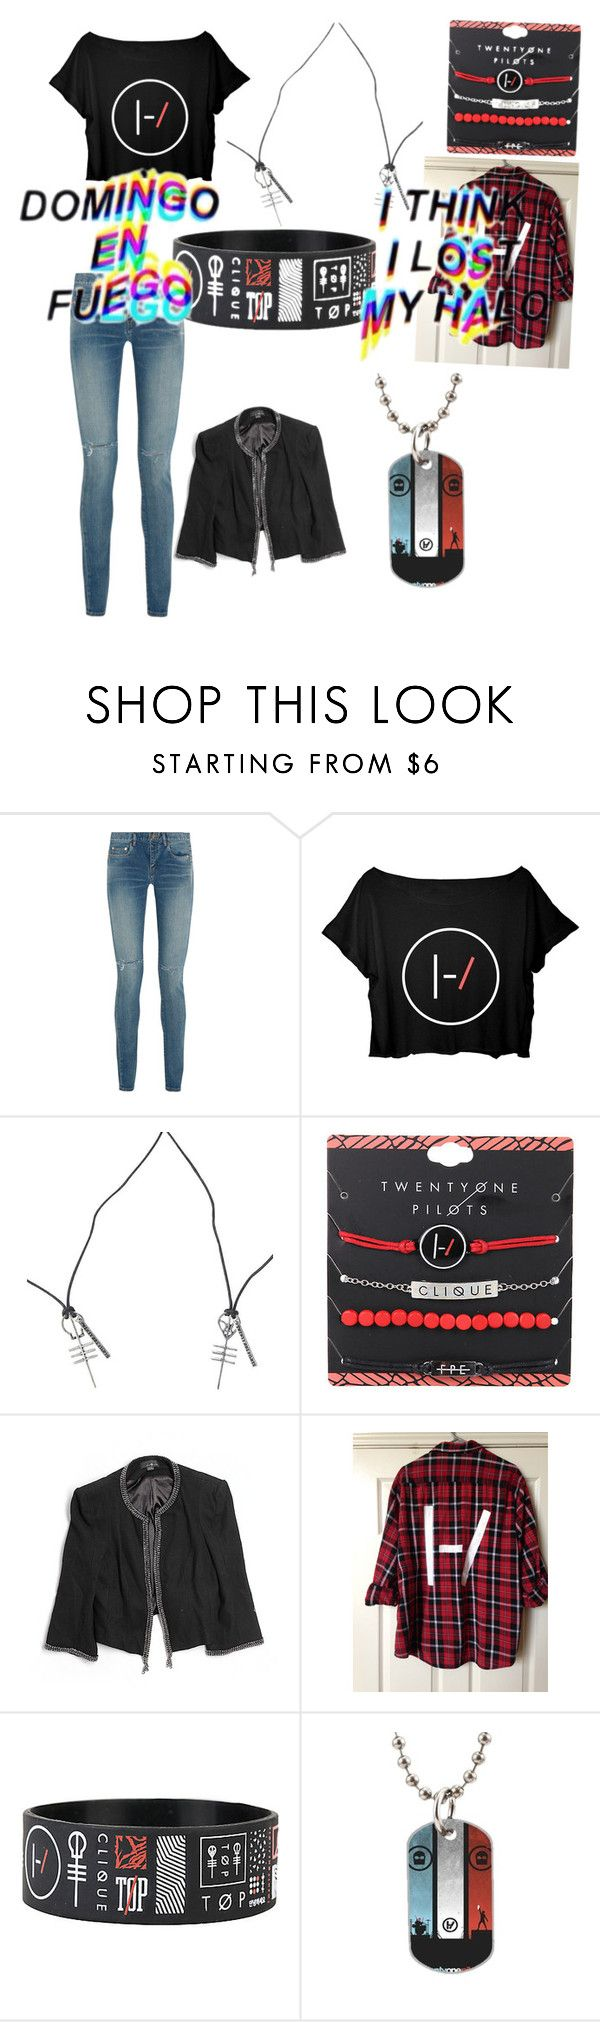 """TWENTY ONE PILOTS"" by a-ms-winchester ❤ liked on Polyvore featuring Yves Saint Laurent"